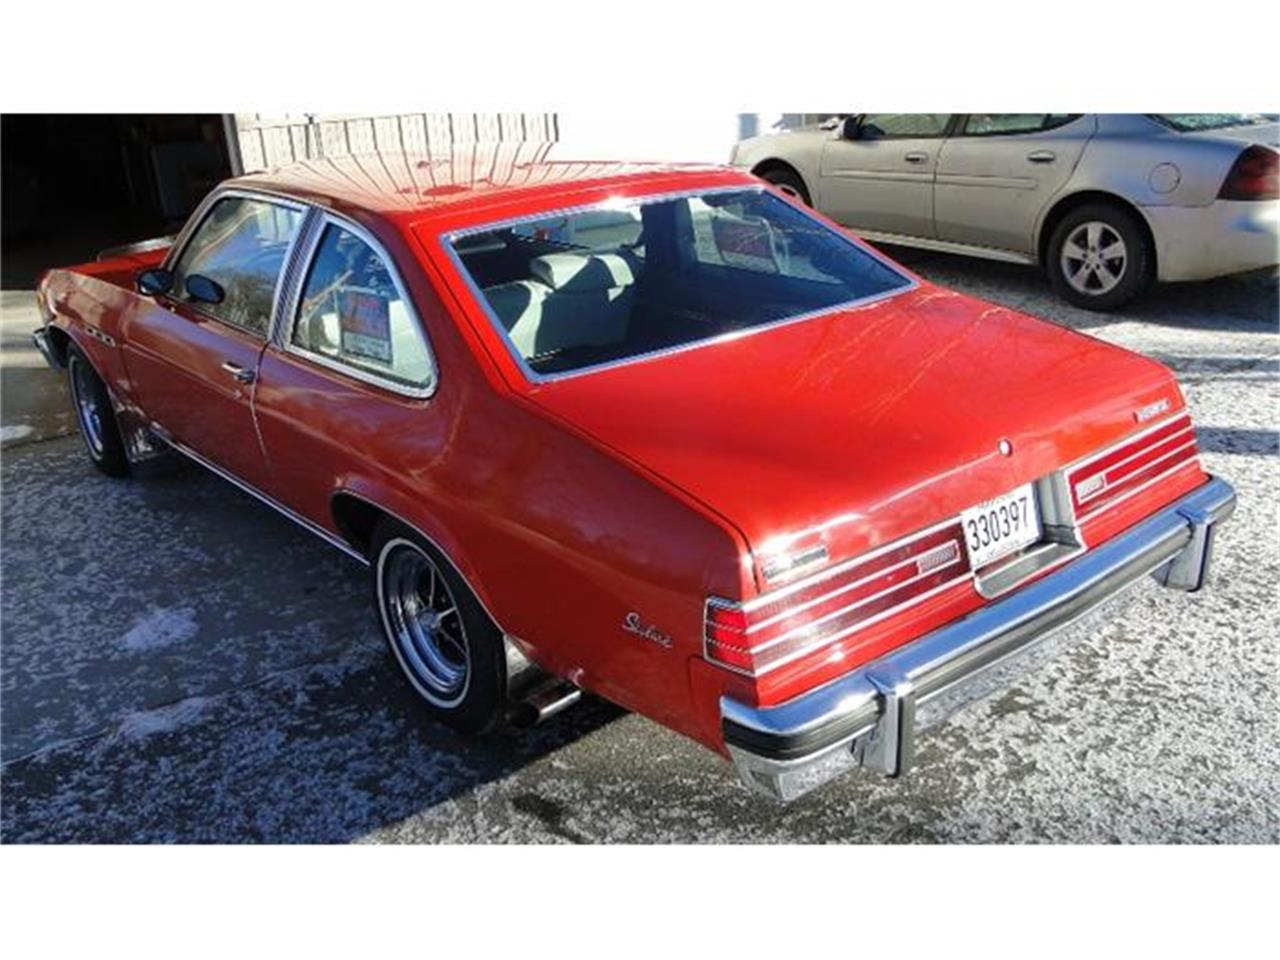 Large Picture of '75 Buick Skylark located in Minnesota - $9,000.00 - DCDX